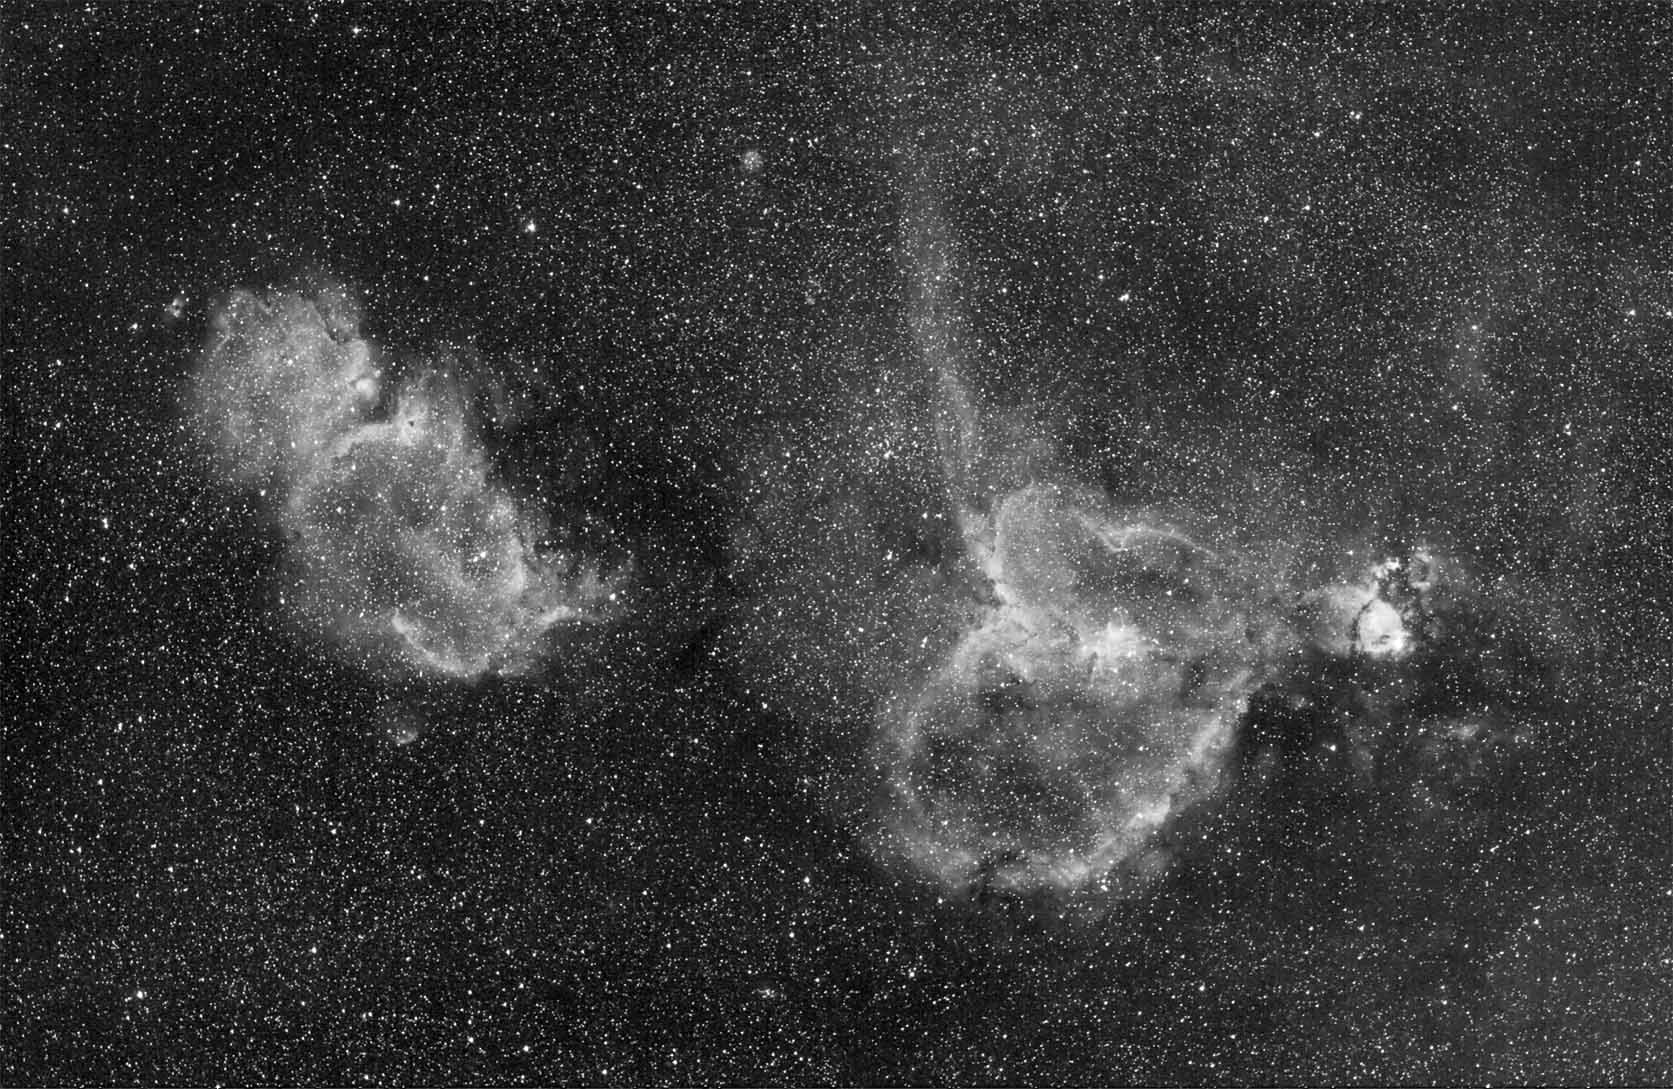 Heart and Soul Nebula - Pics about space